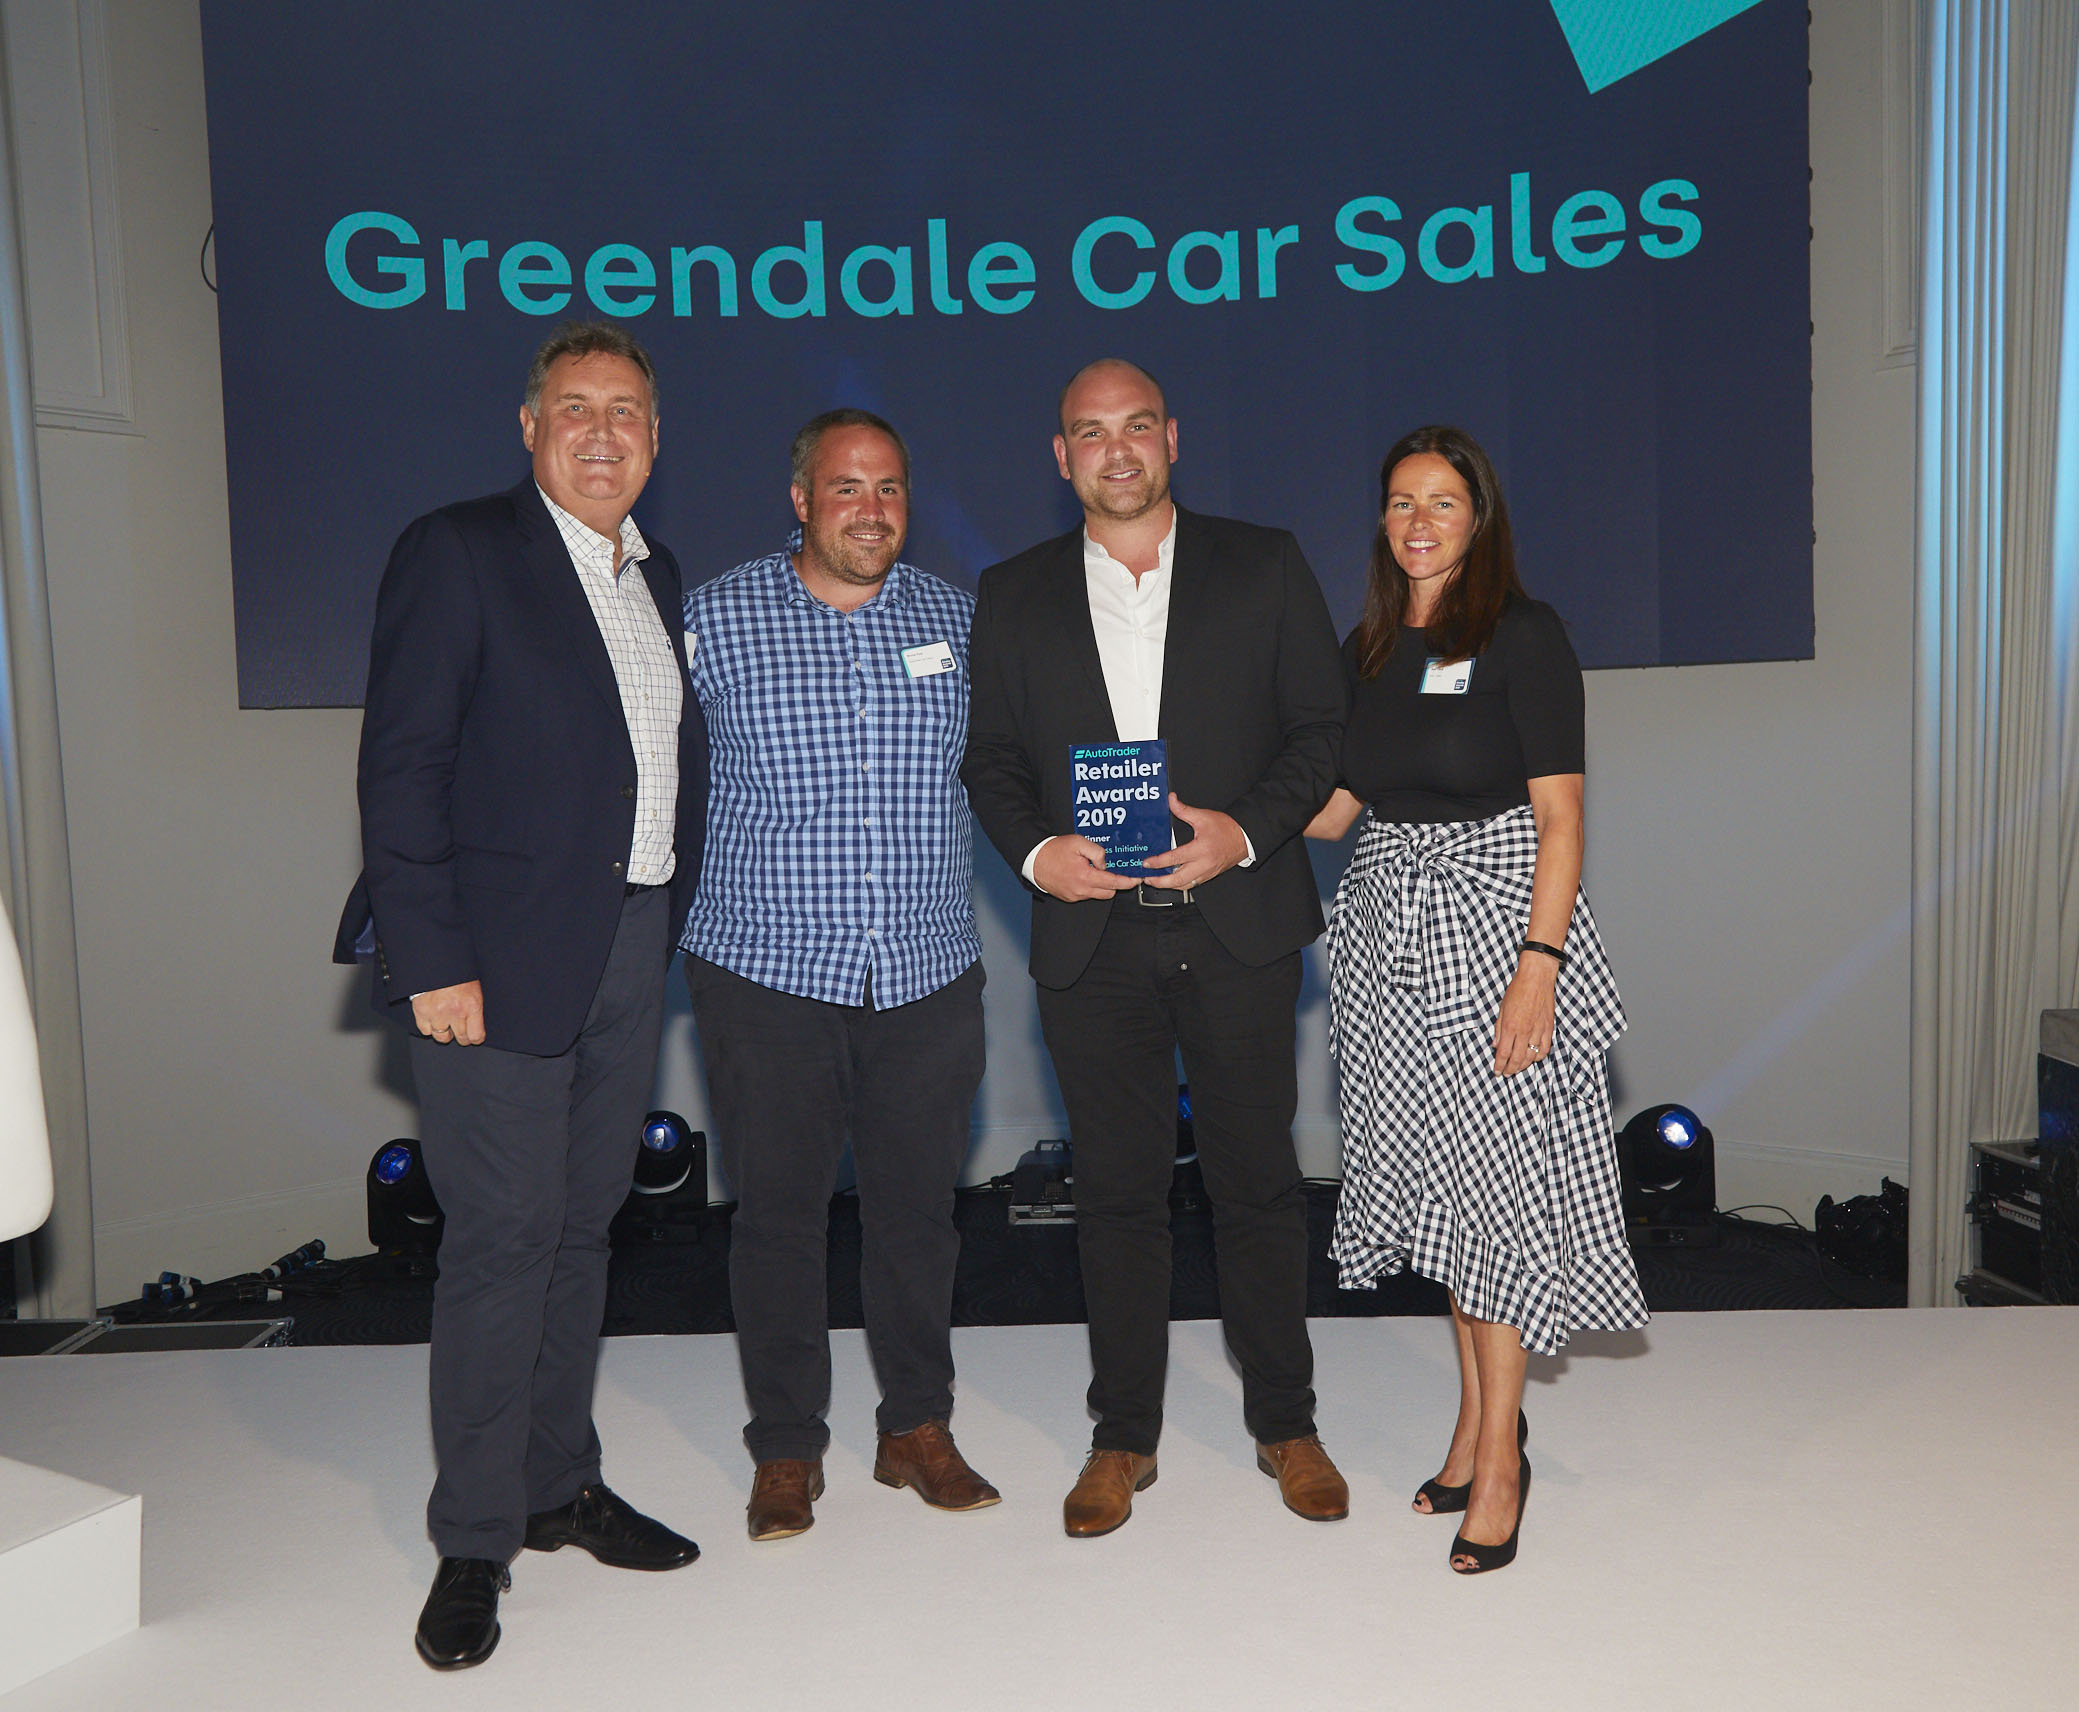 Business Initiative of the Year (under 50 cars)